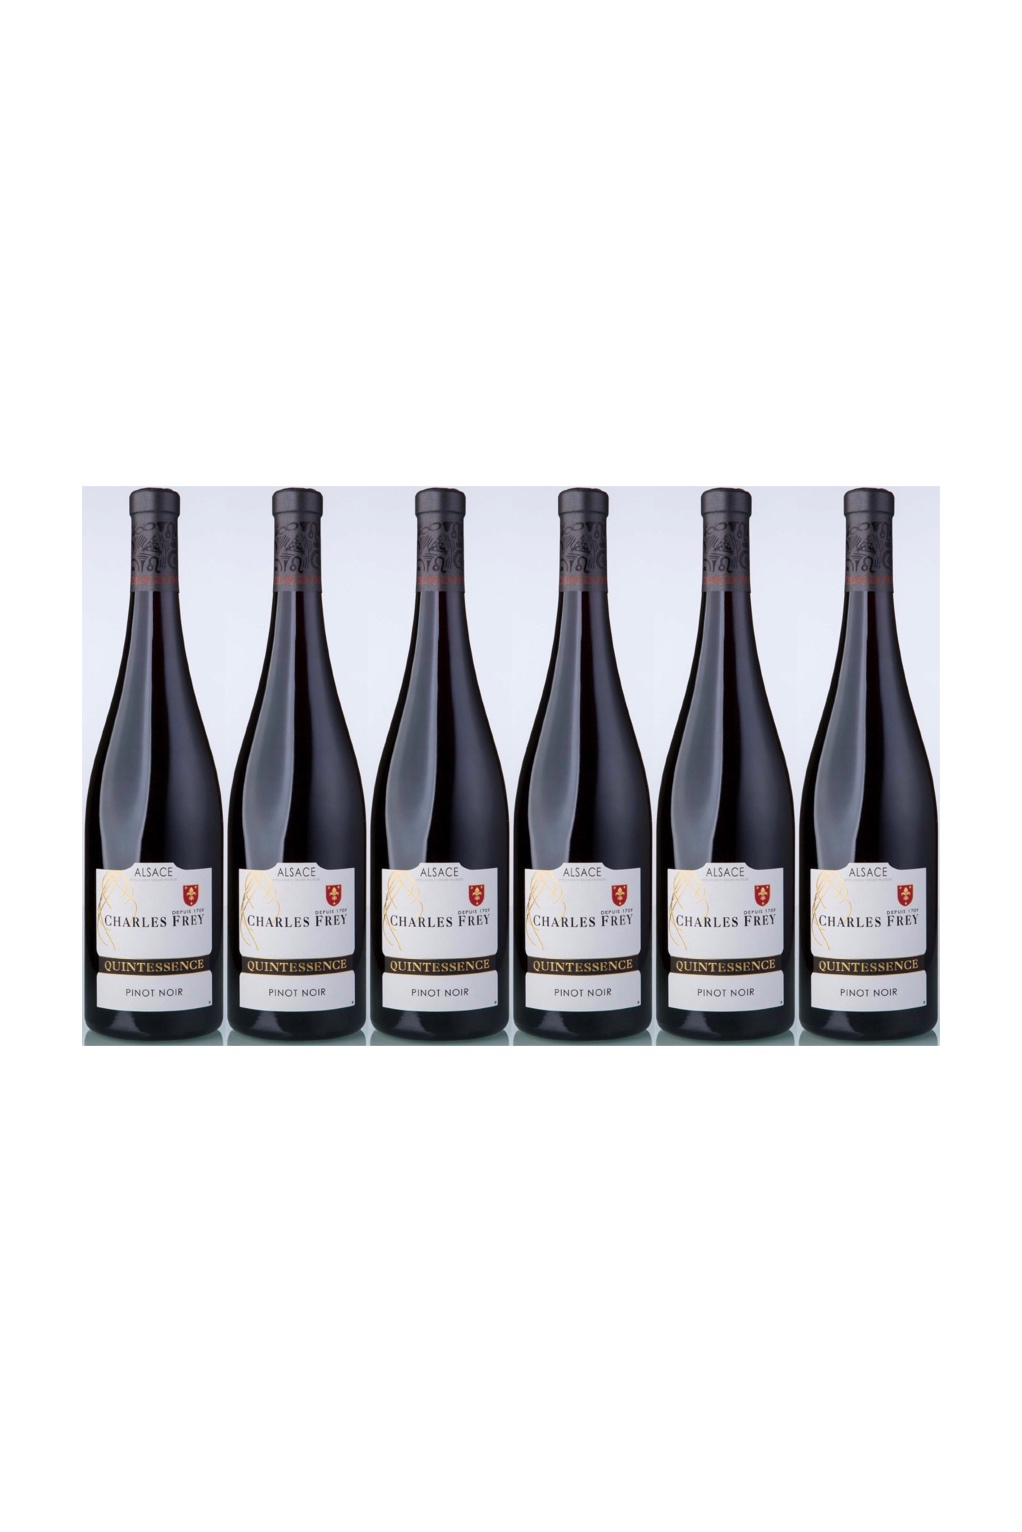 1 Case of Domaine Frey, AOP Alsace Pinot Noir Quintessence, 2016 ( 6 bottles) with 3 FREE Bottles of KWIRK BELGIUM Craft Beer worth $13.50!